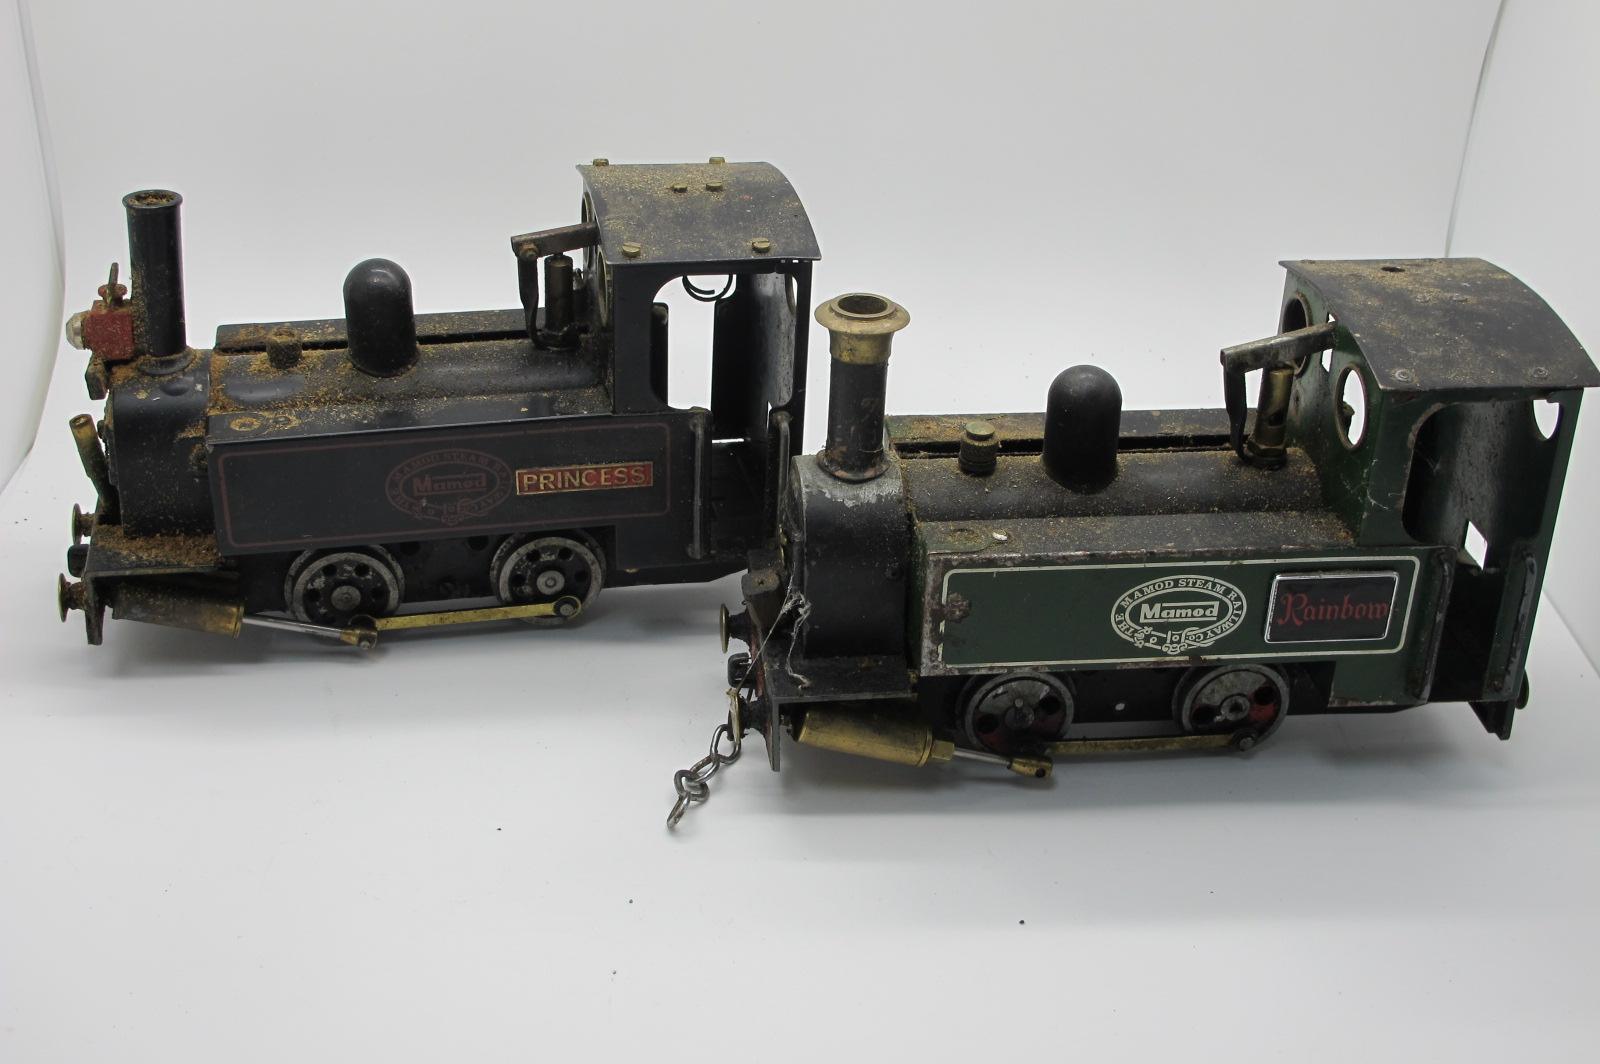 Two Mamod Live Steam 0-4-0 Locomotives, playworn, modified, parts missing, damaged.